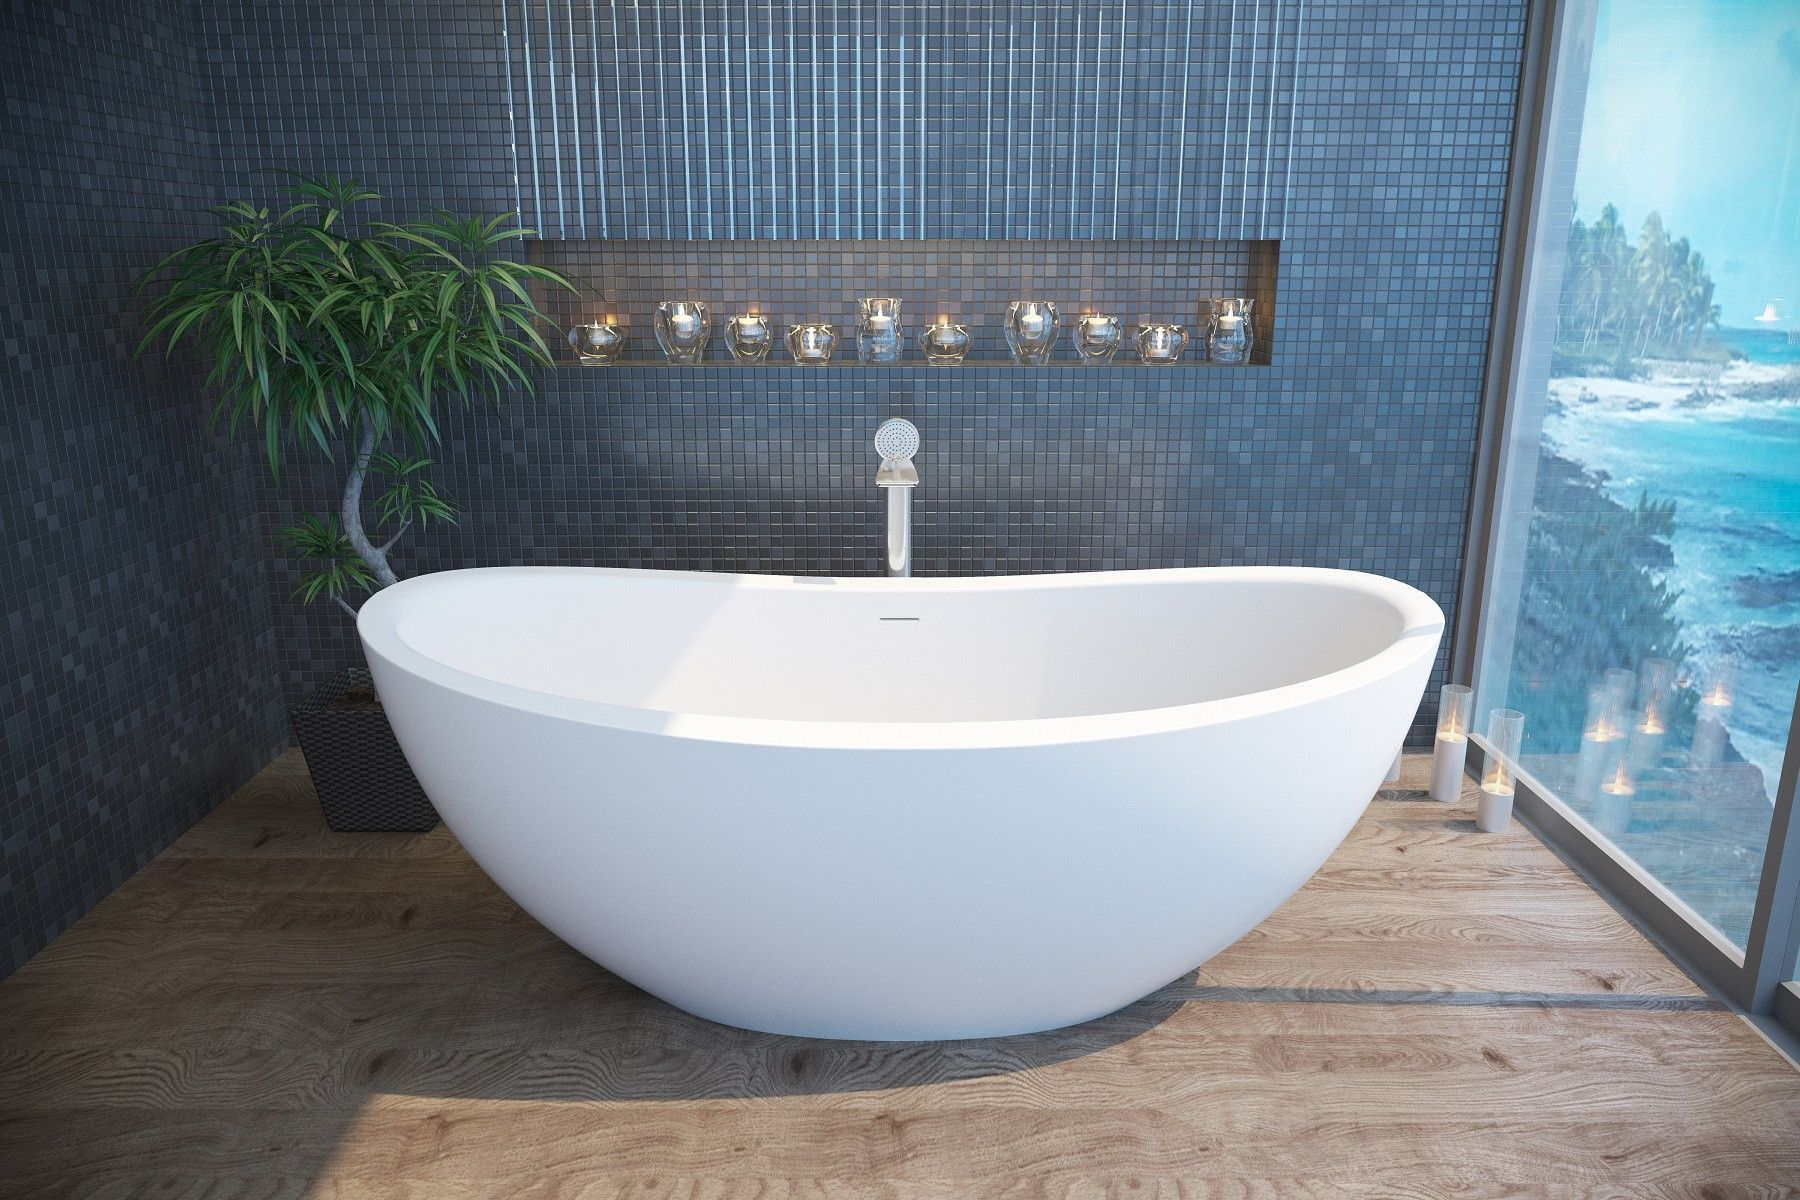 Aquatica PureScape 171: Huge Freestanding Curved Stone Tub for Two ...